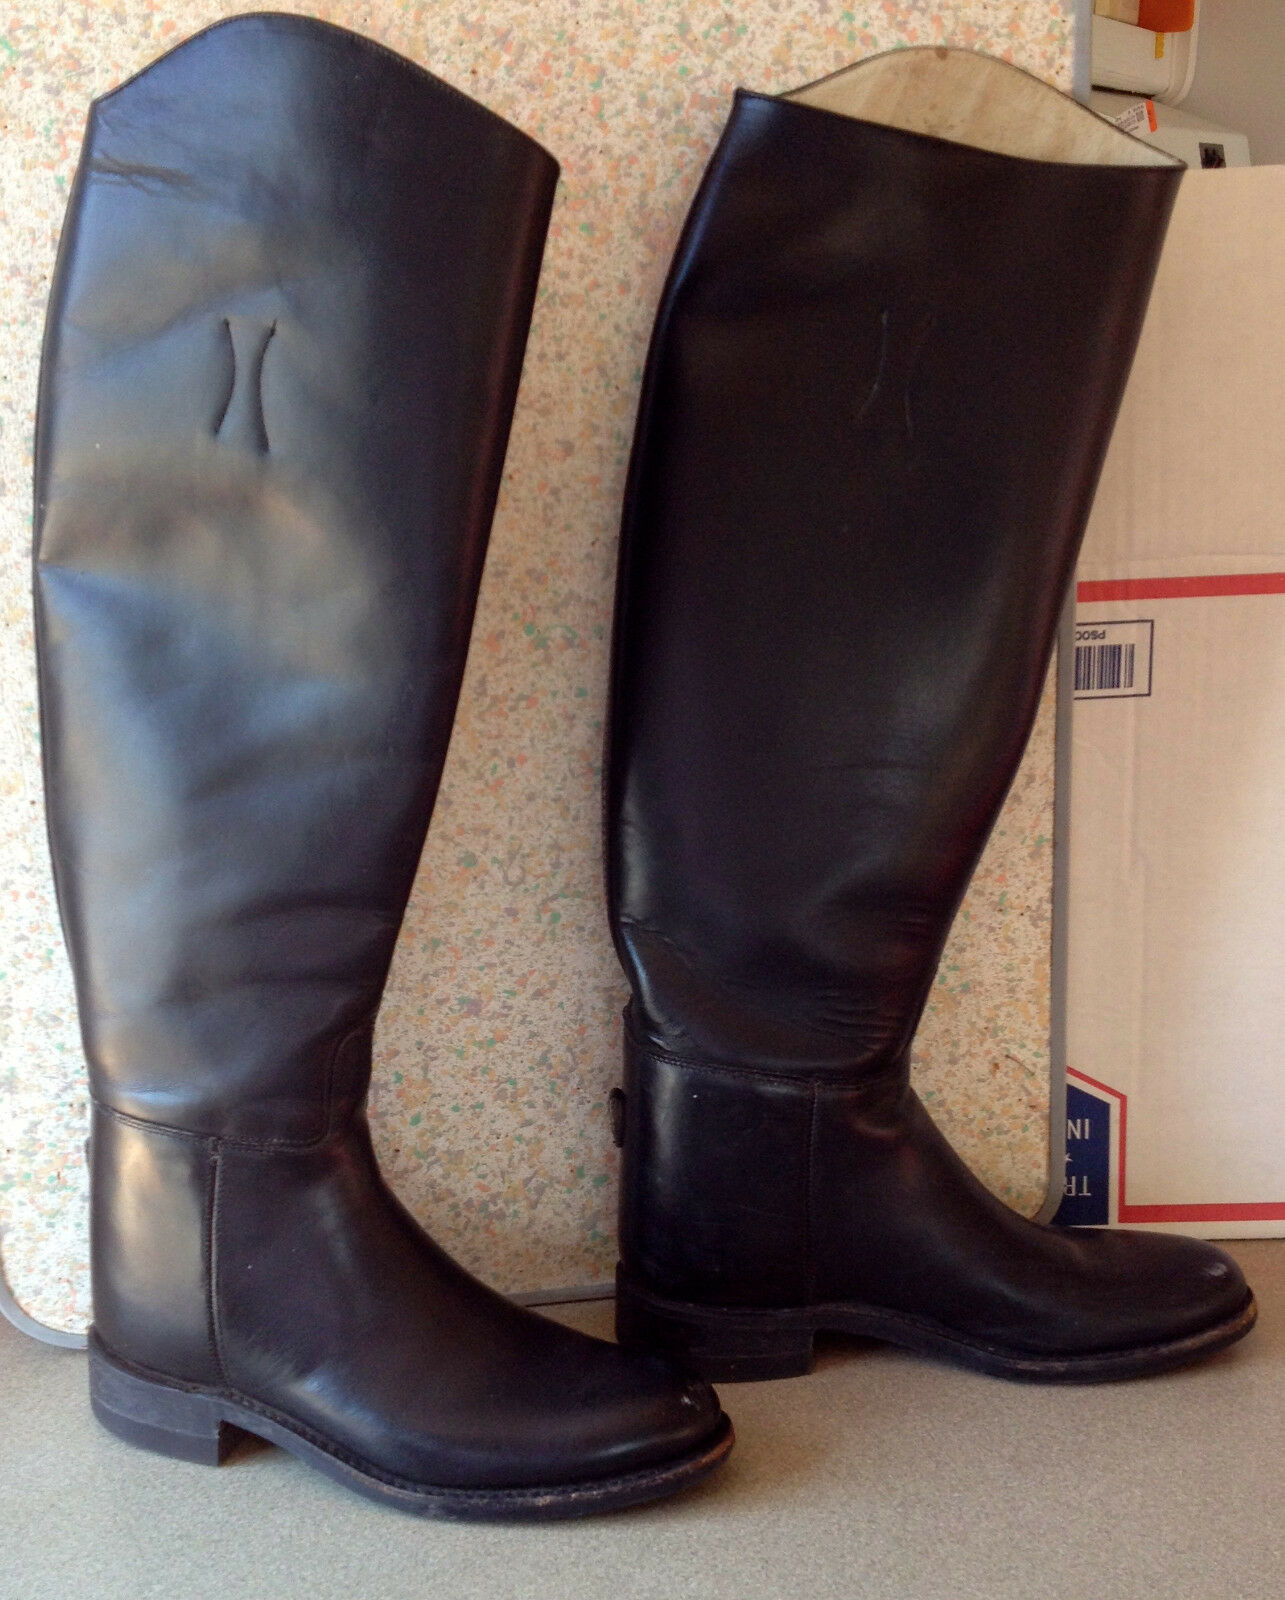 The Effingham Equestrian Boots Bond  Boot Co. Size 5  all in high quality and low price